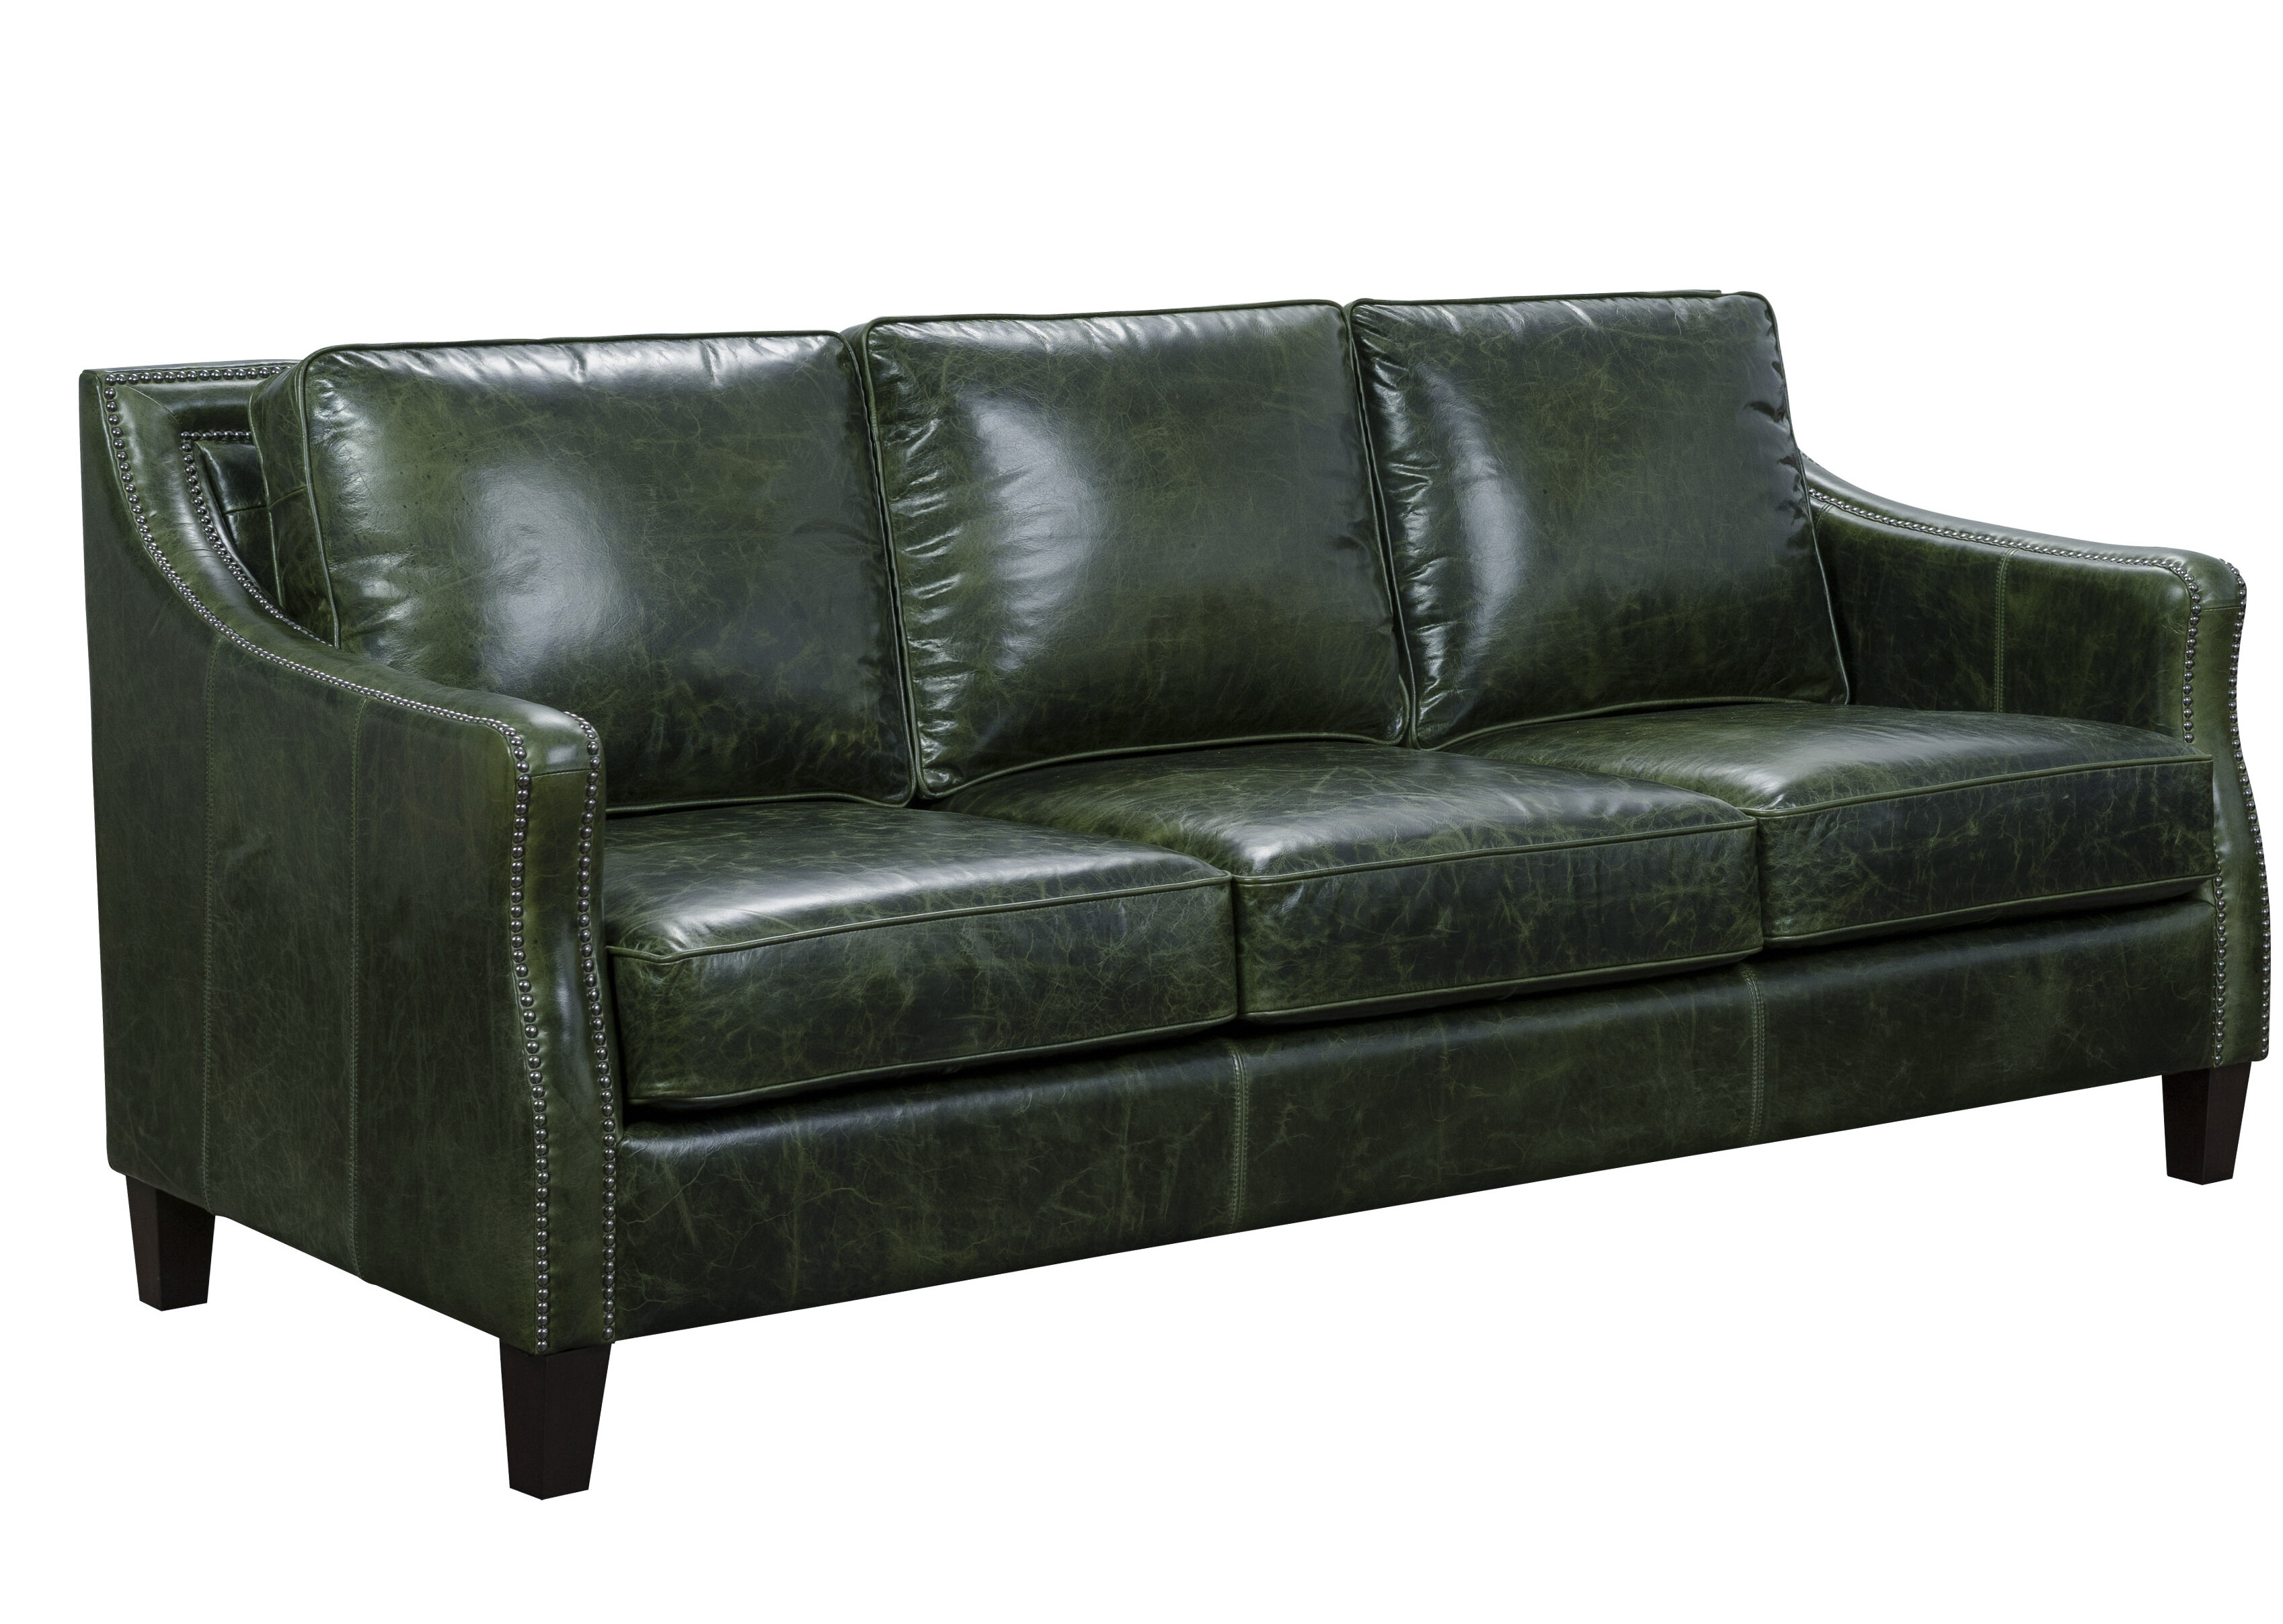 Marvelous Canora Grey Barrington Leather Sofa Wayfair Pabps2019 Chair Design Images Pabps2019Com